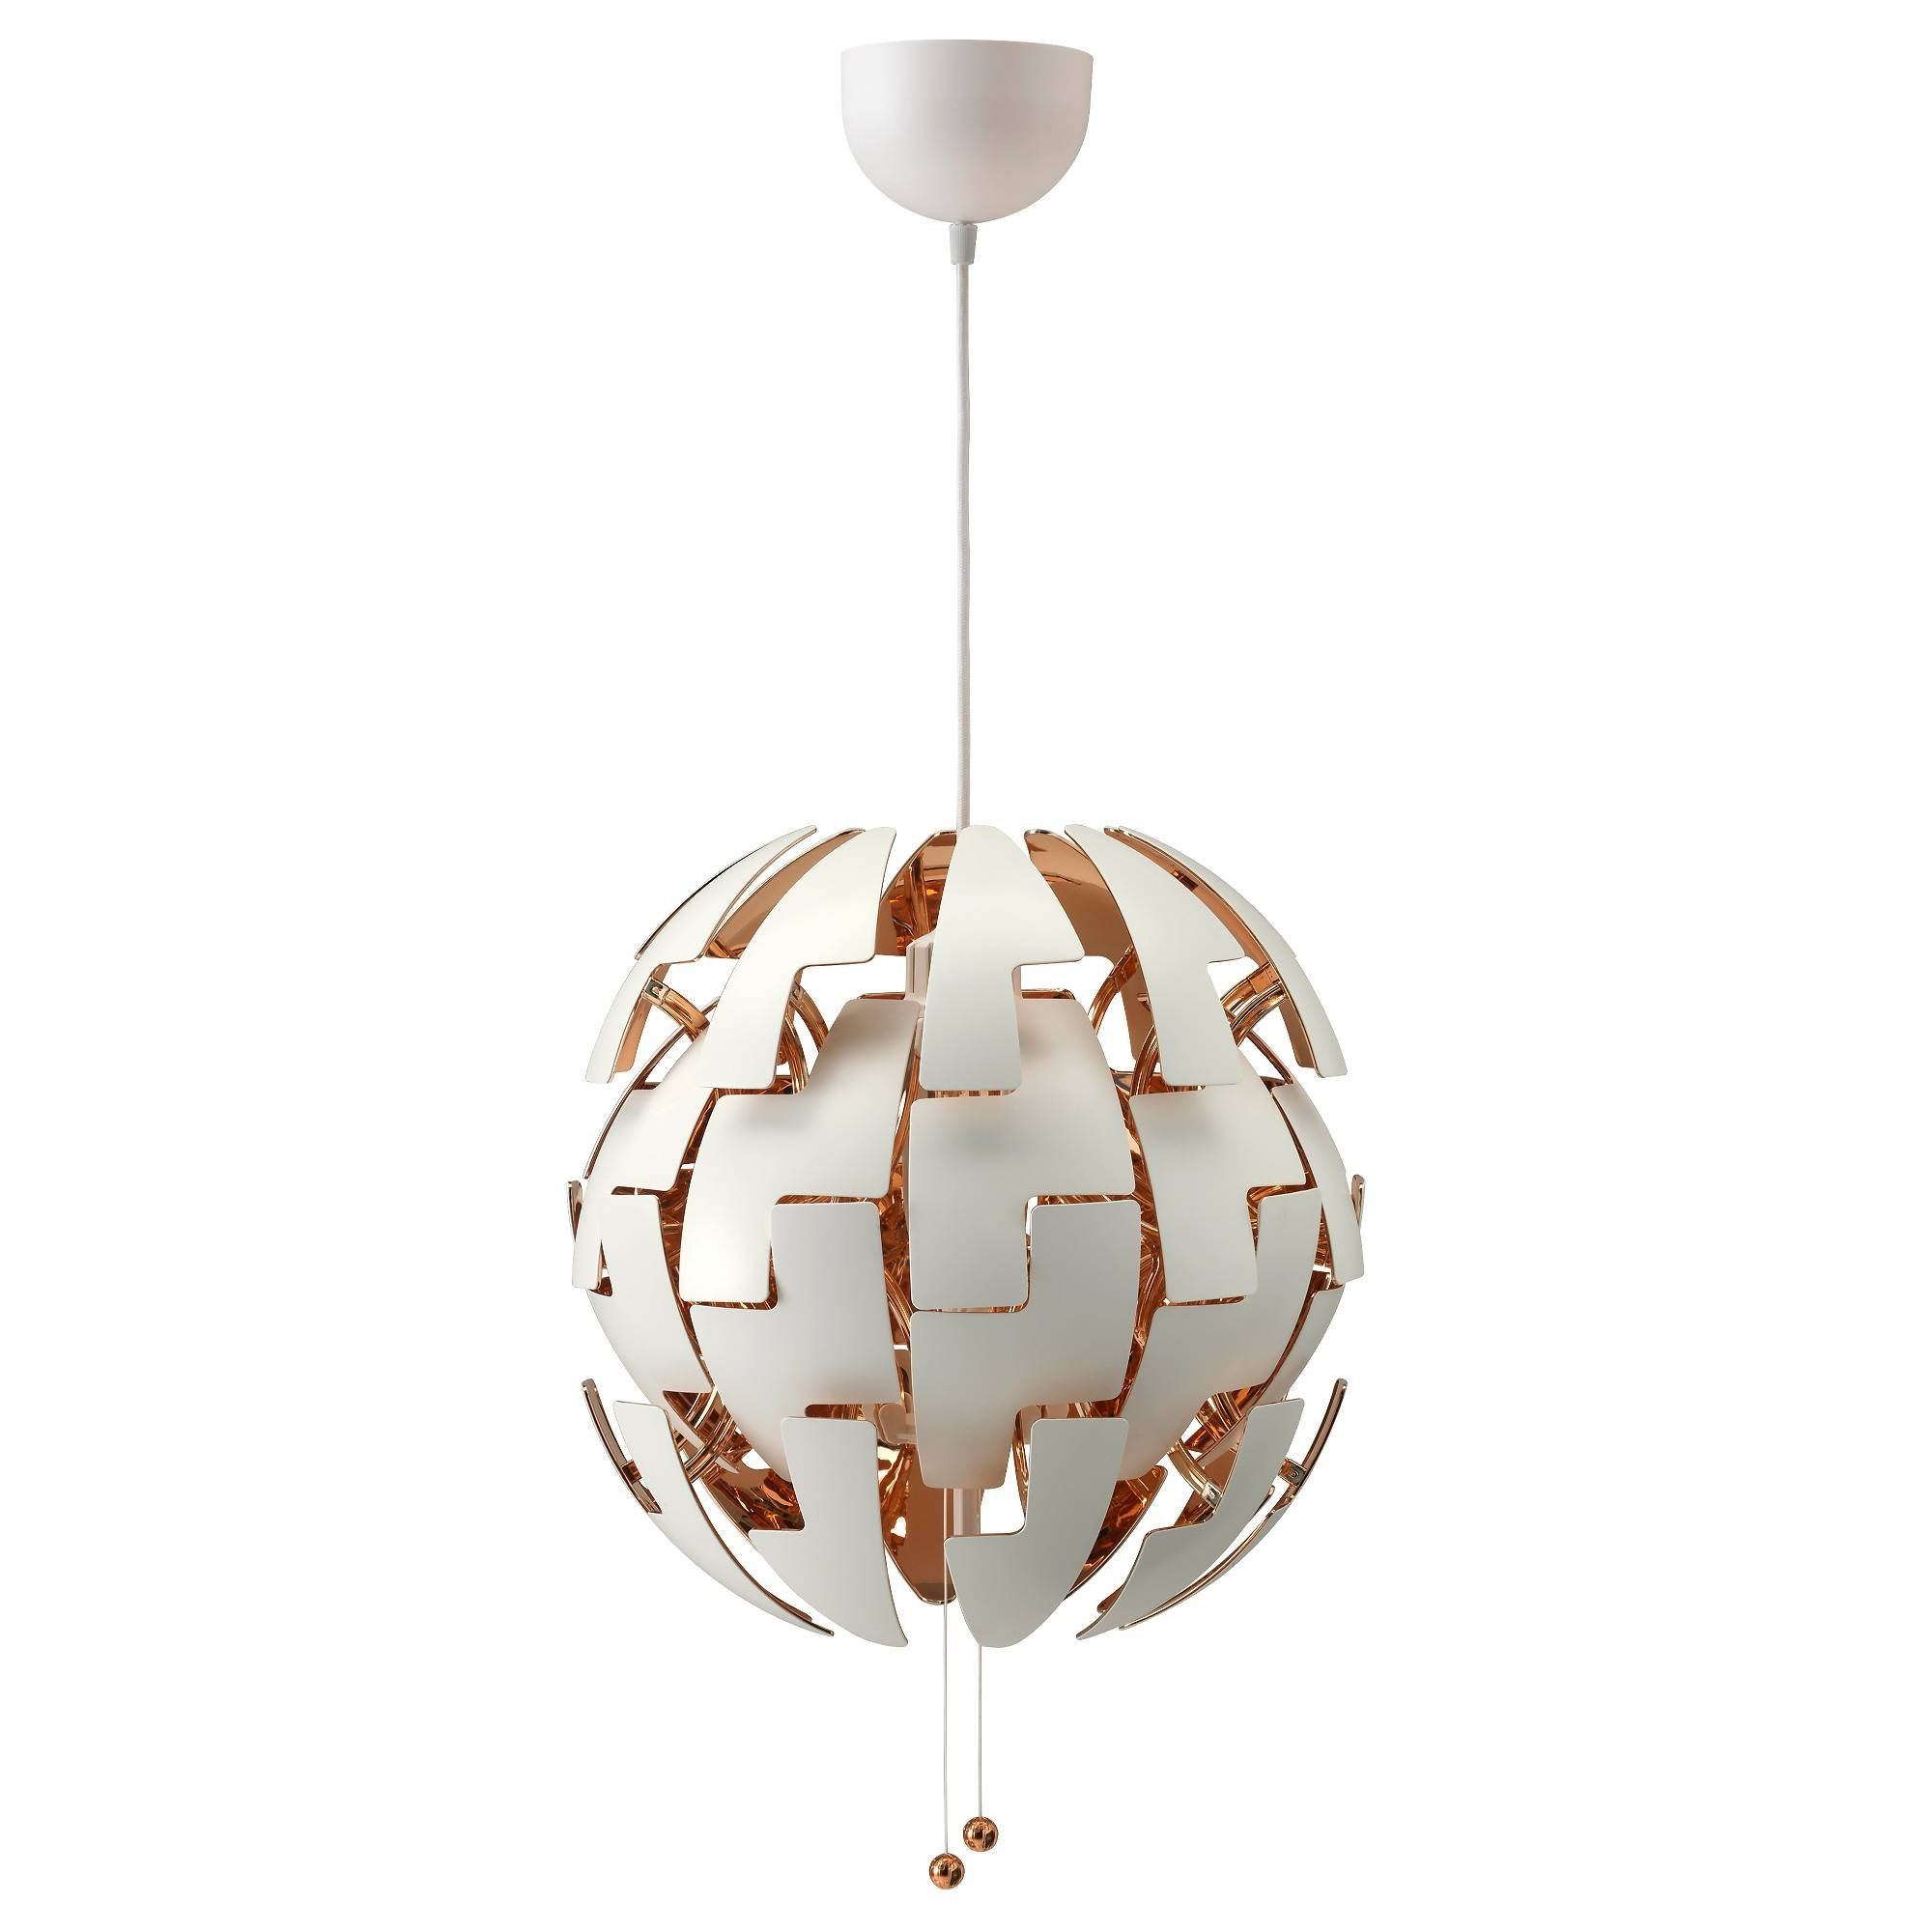 Ikea Ps 2014 Pendant Lamp - White/copper Color - Ikea within Ikea Hanging Lights (Image 10 of 15)